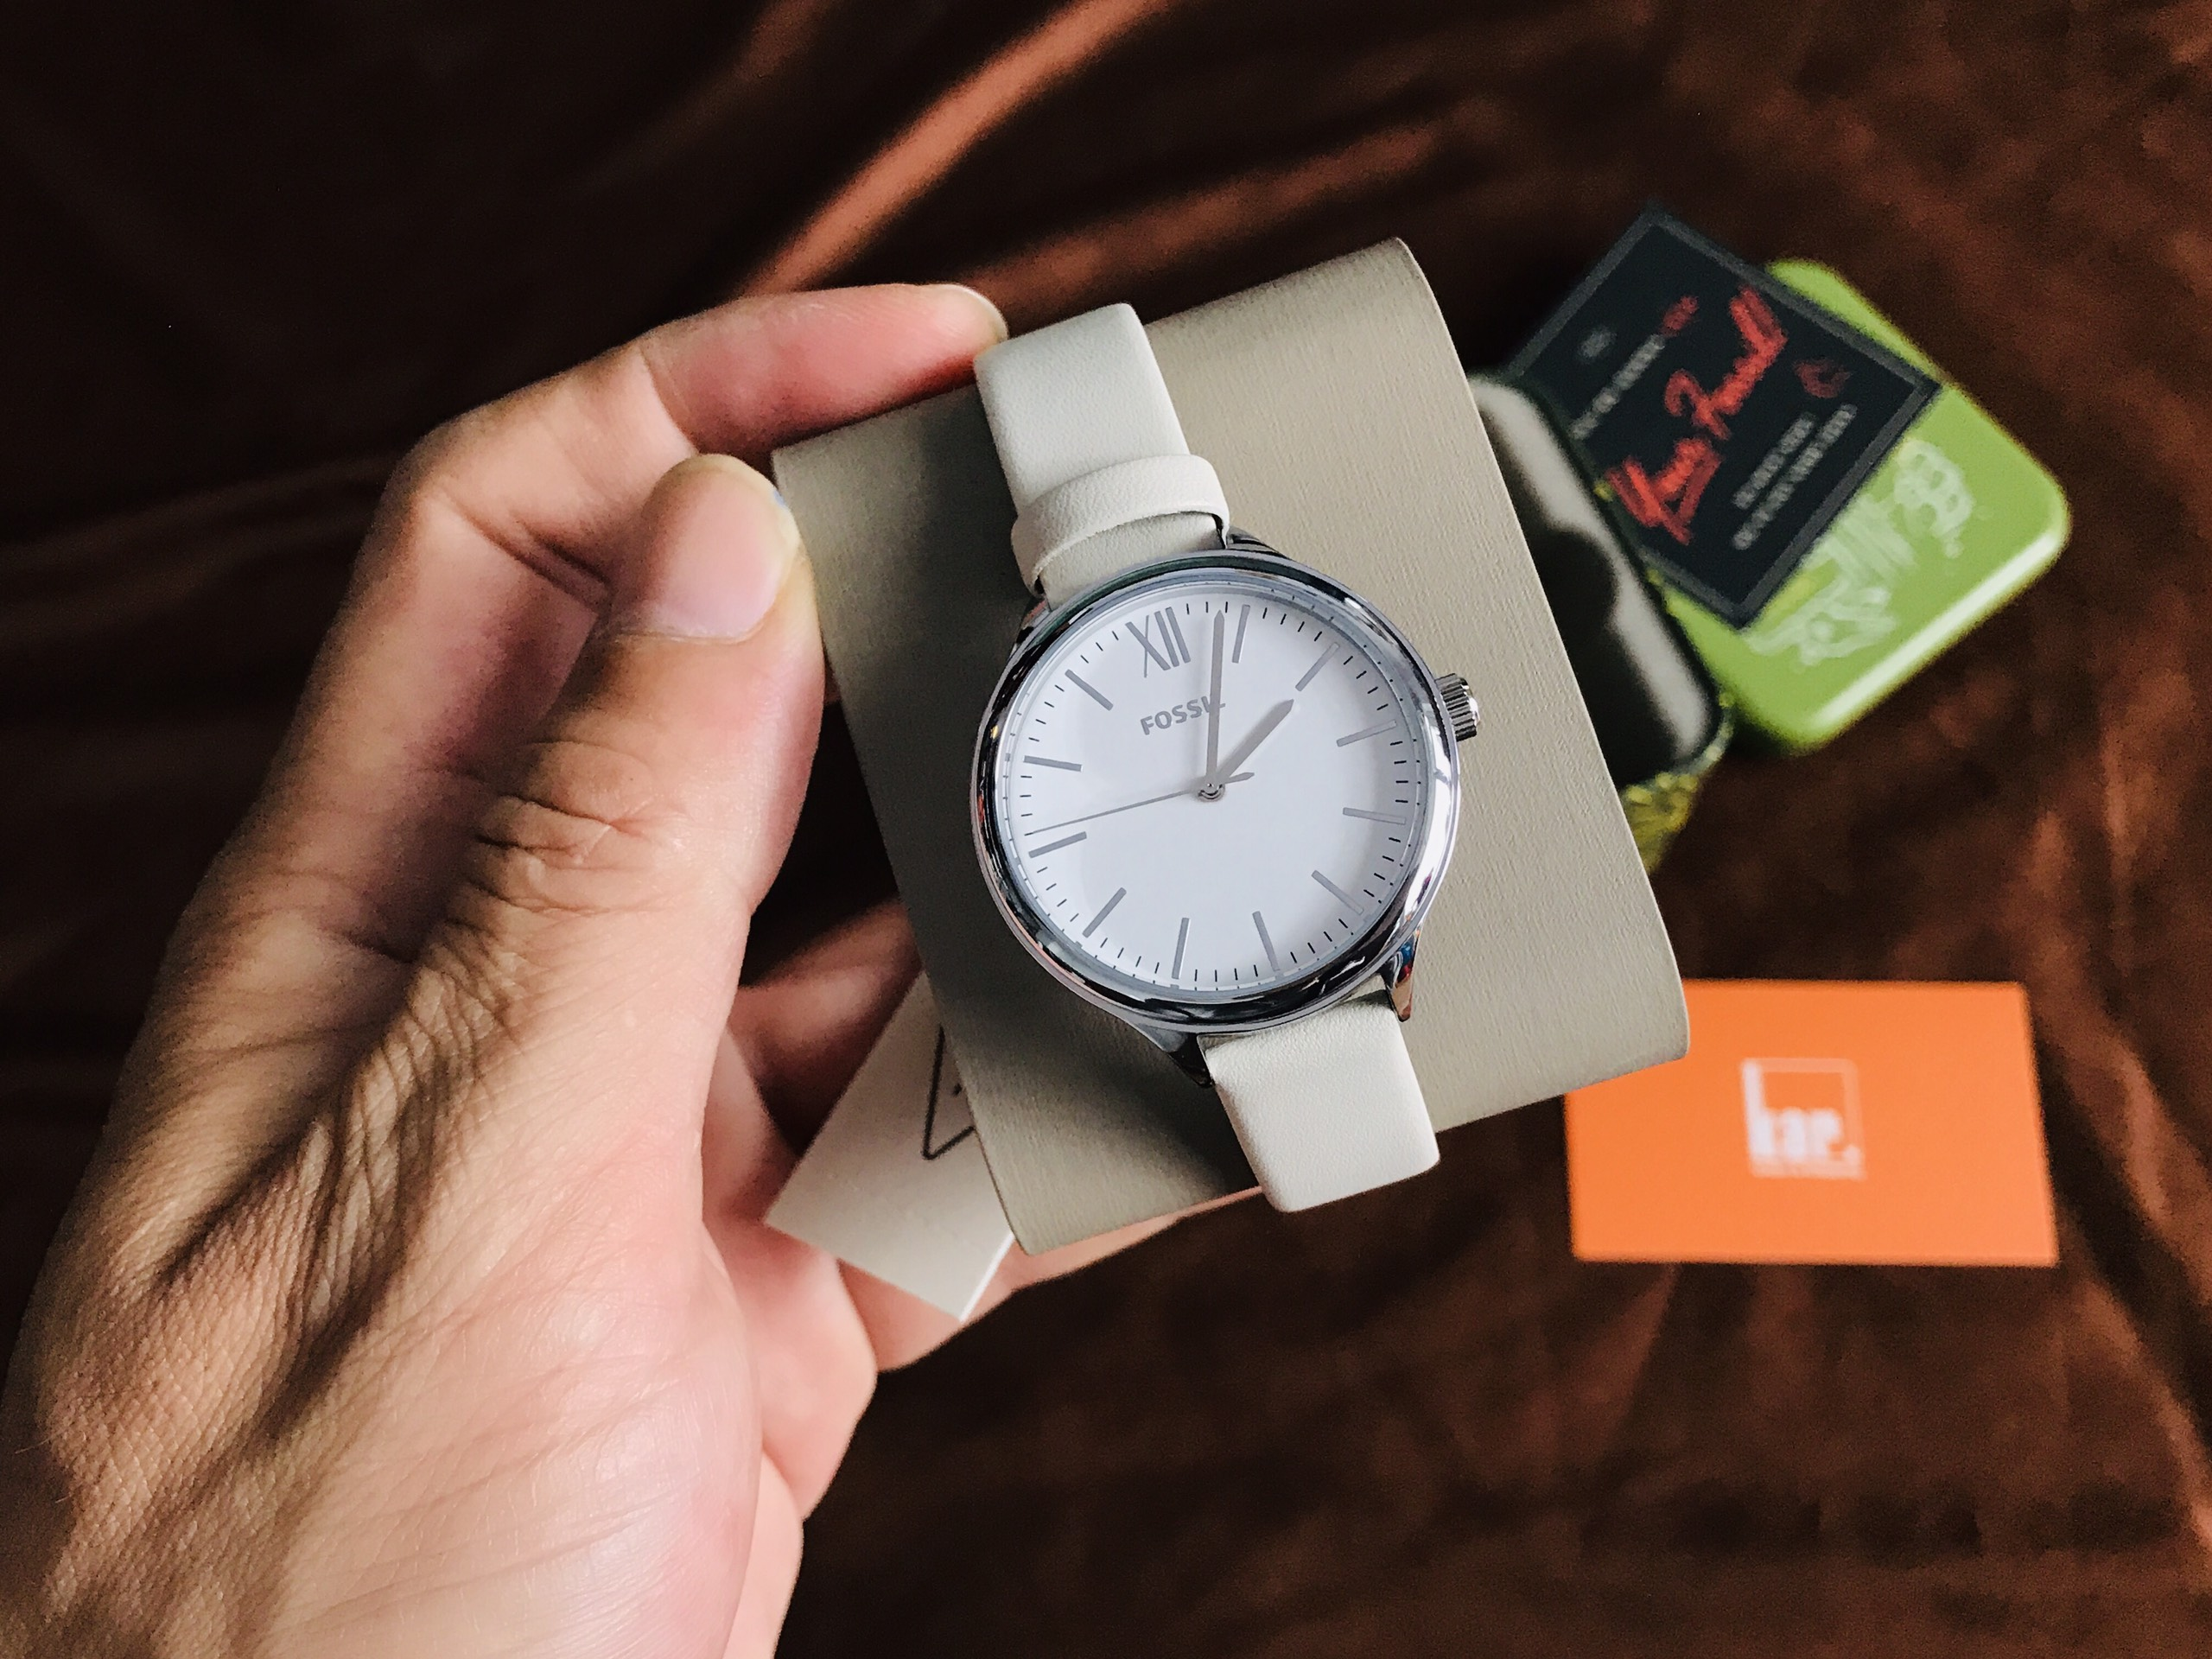 Đồng hồ Nữ Fossil BQ8003 Suitor Three-Hand White Leather Watch